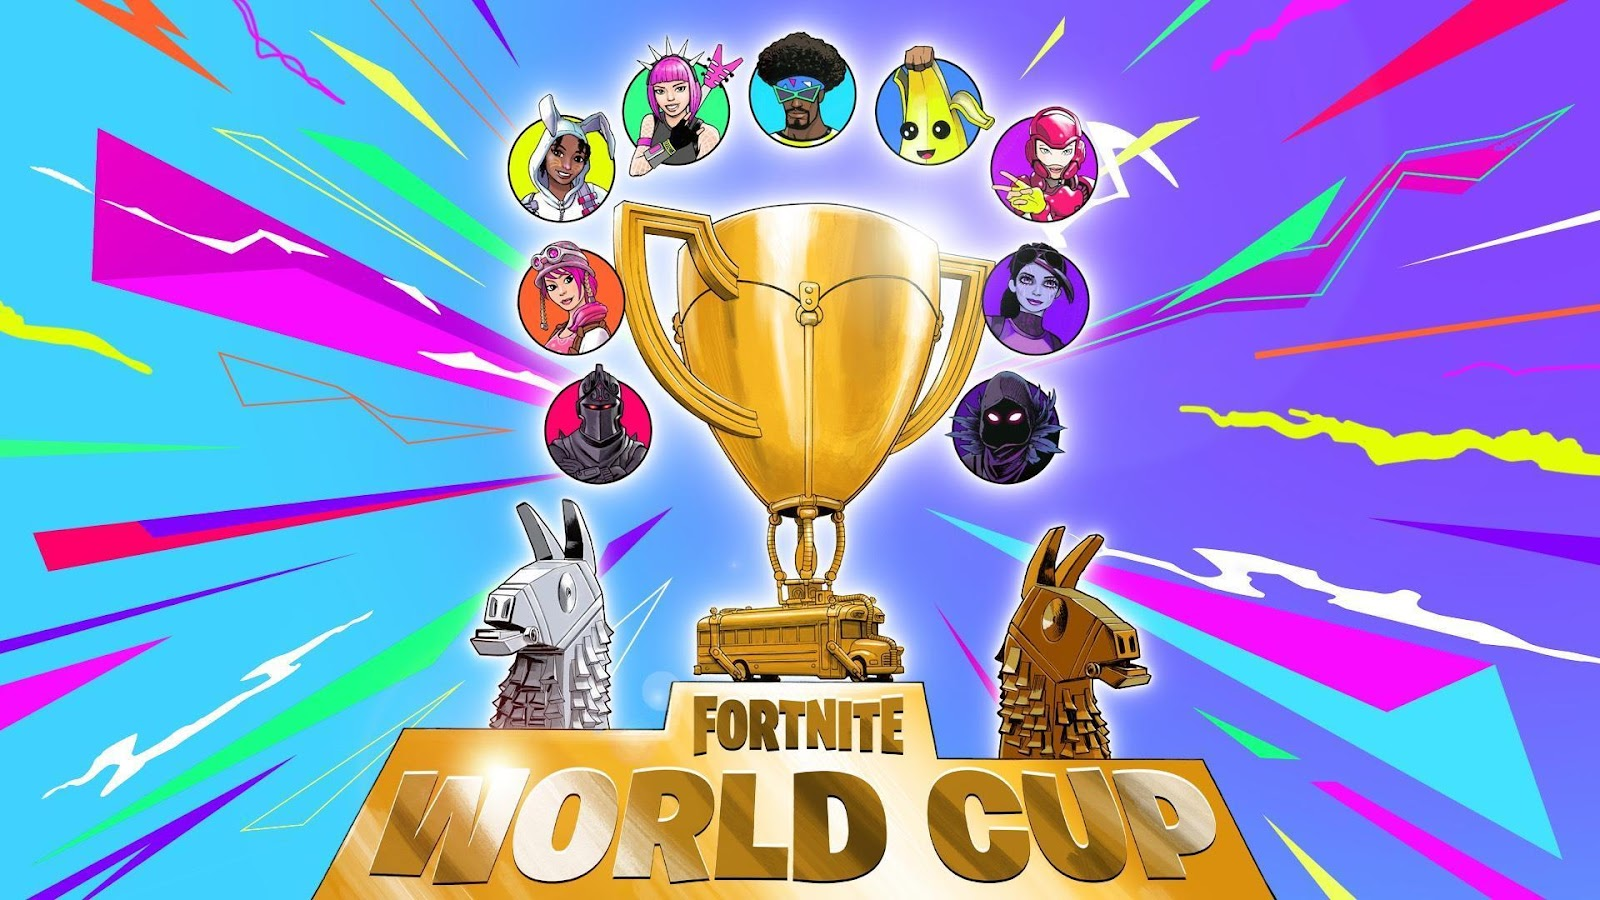 How to get cheap Fortnite World Cup Tickets